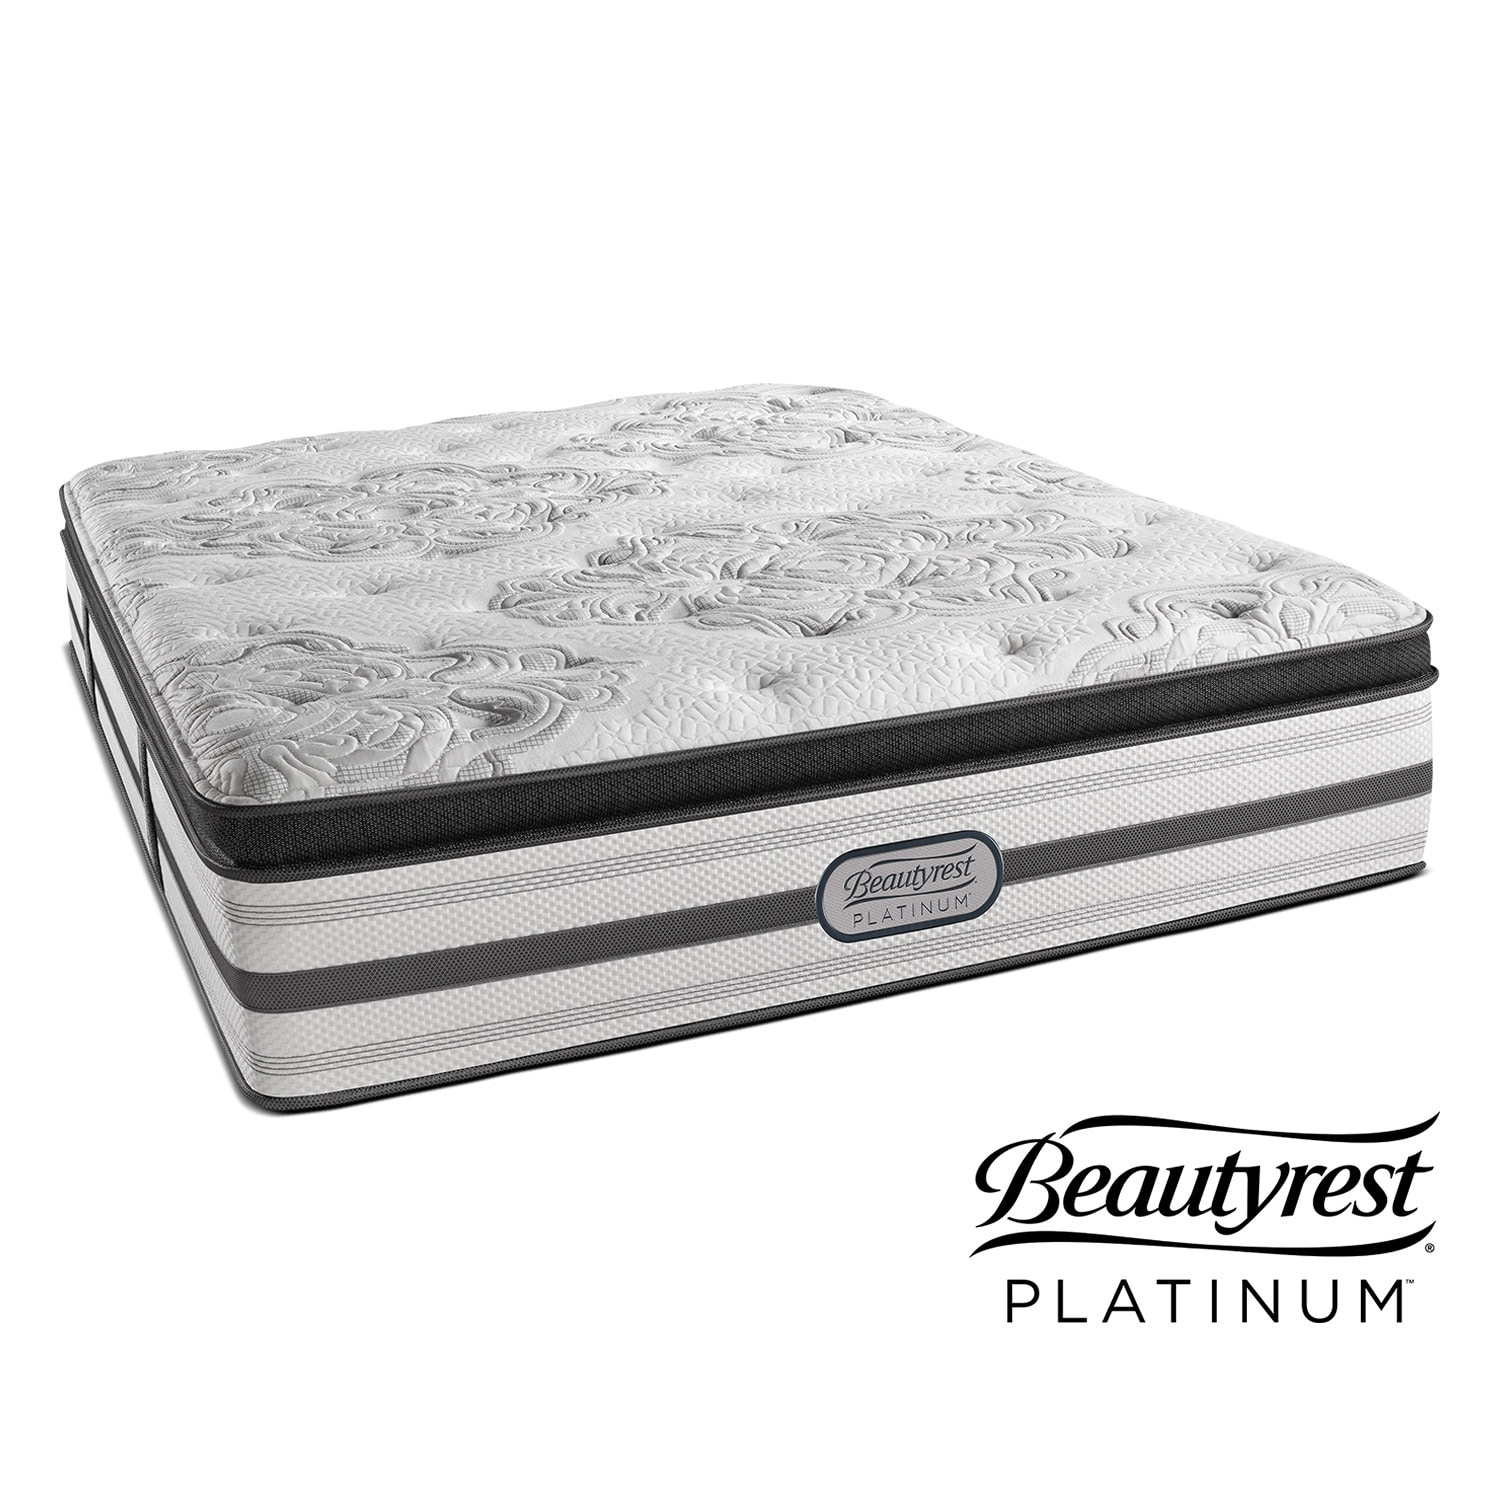 Mattresses and Bedding - Genevieve Queen Mattress